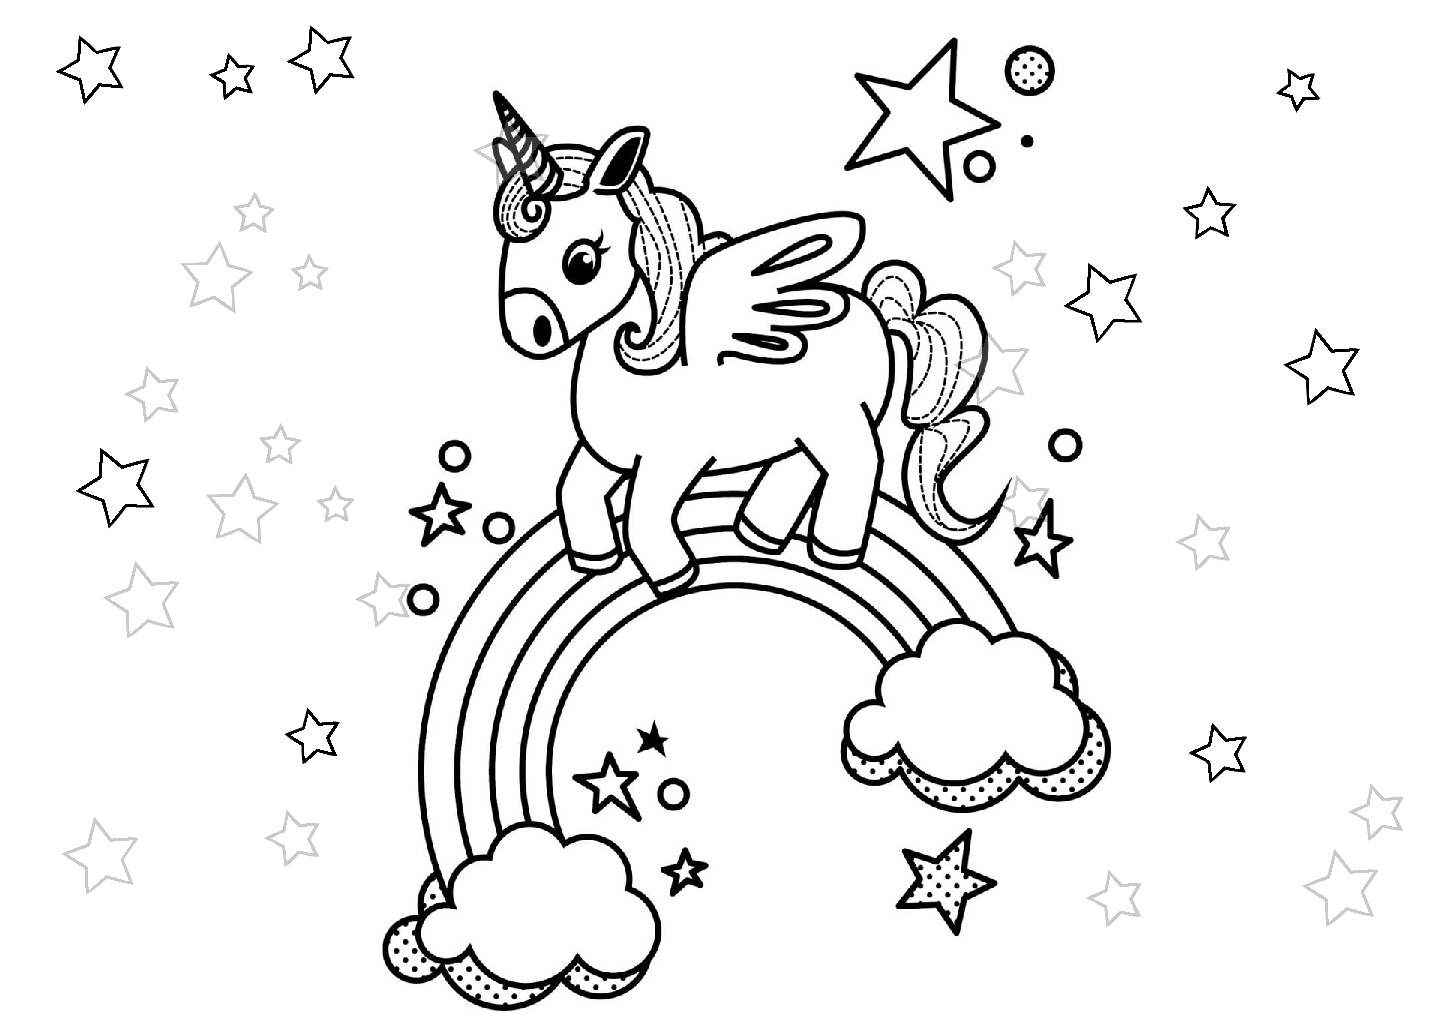 Printable Stars and Unicorn Rainbow Coloring Pages for Girls - Print Color  Craft